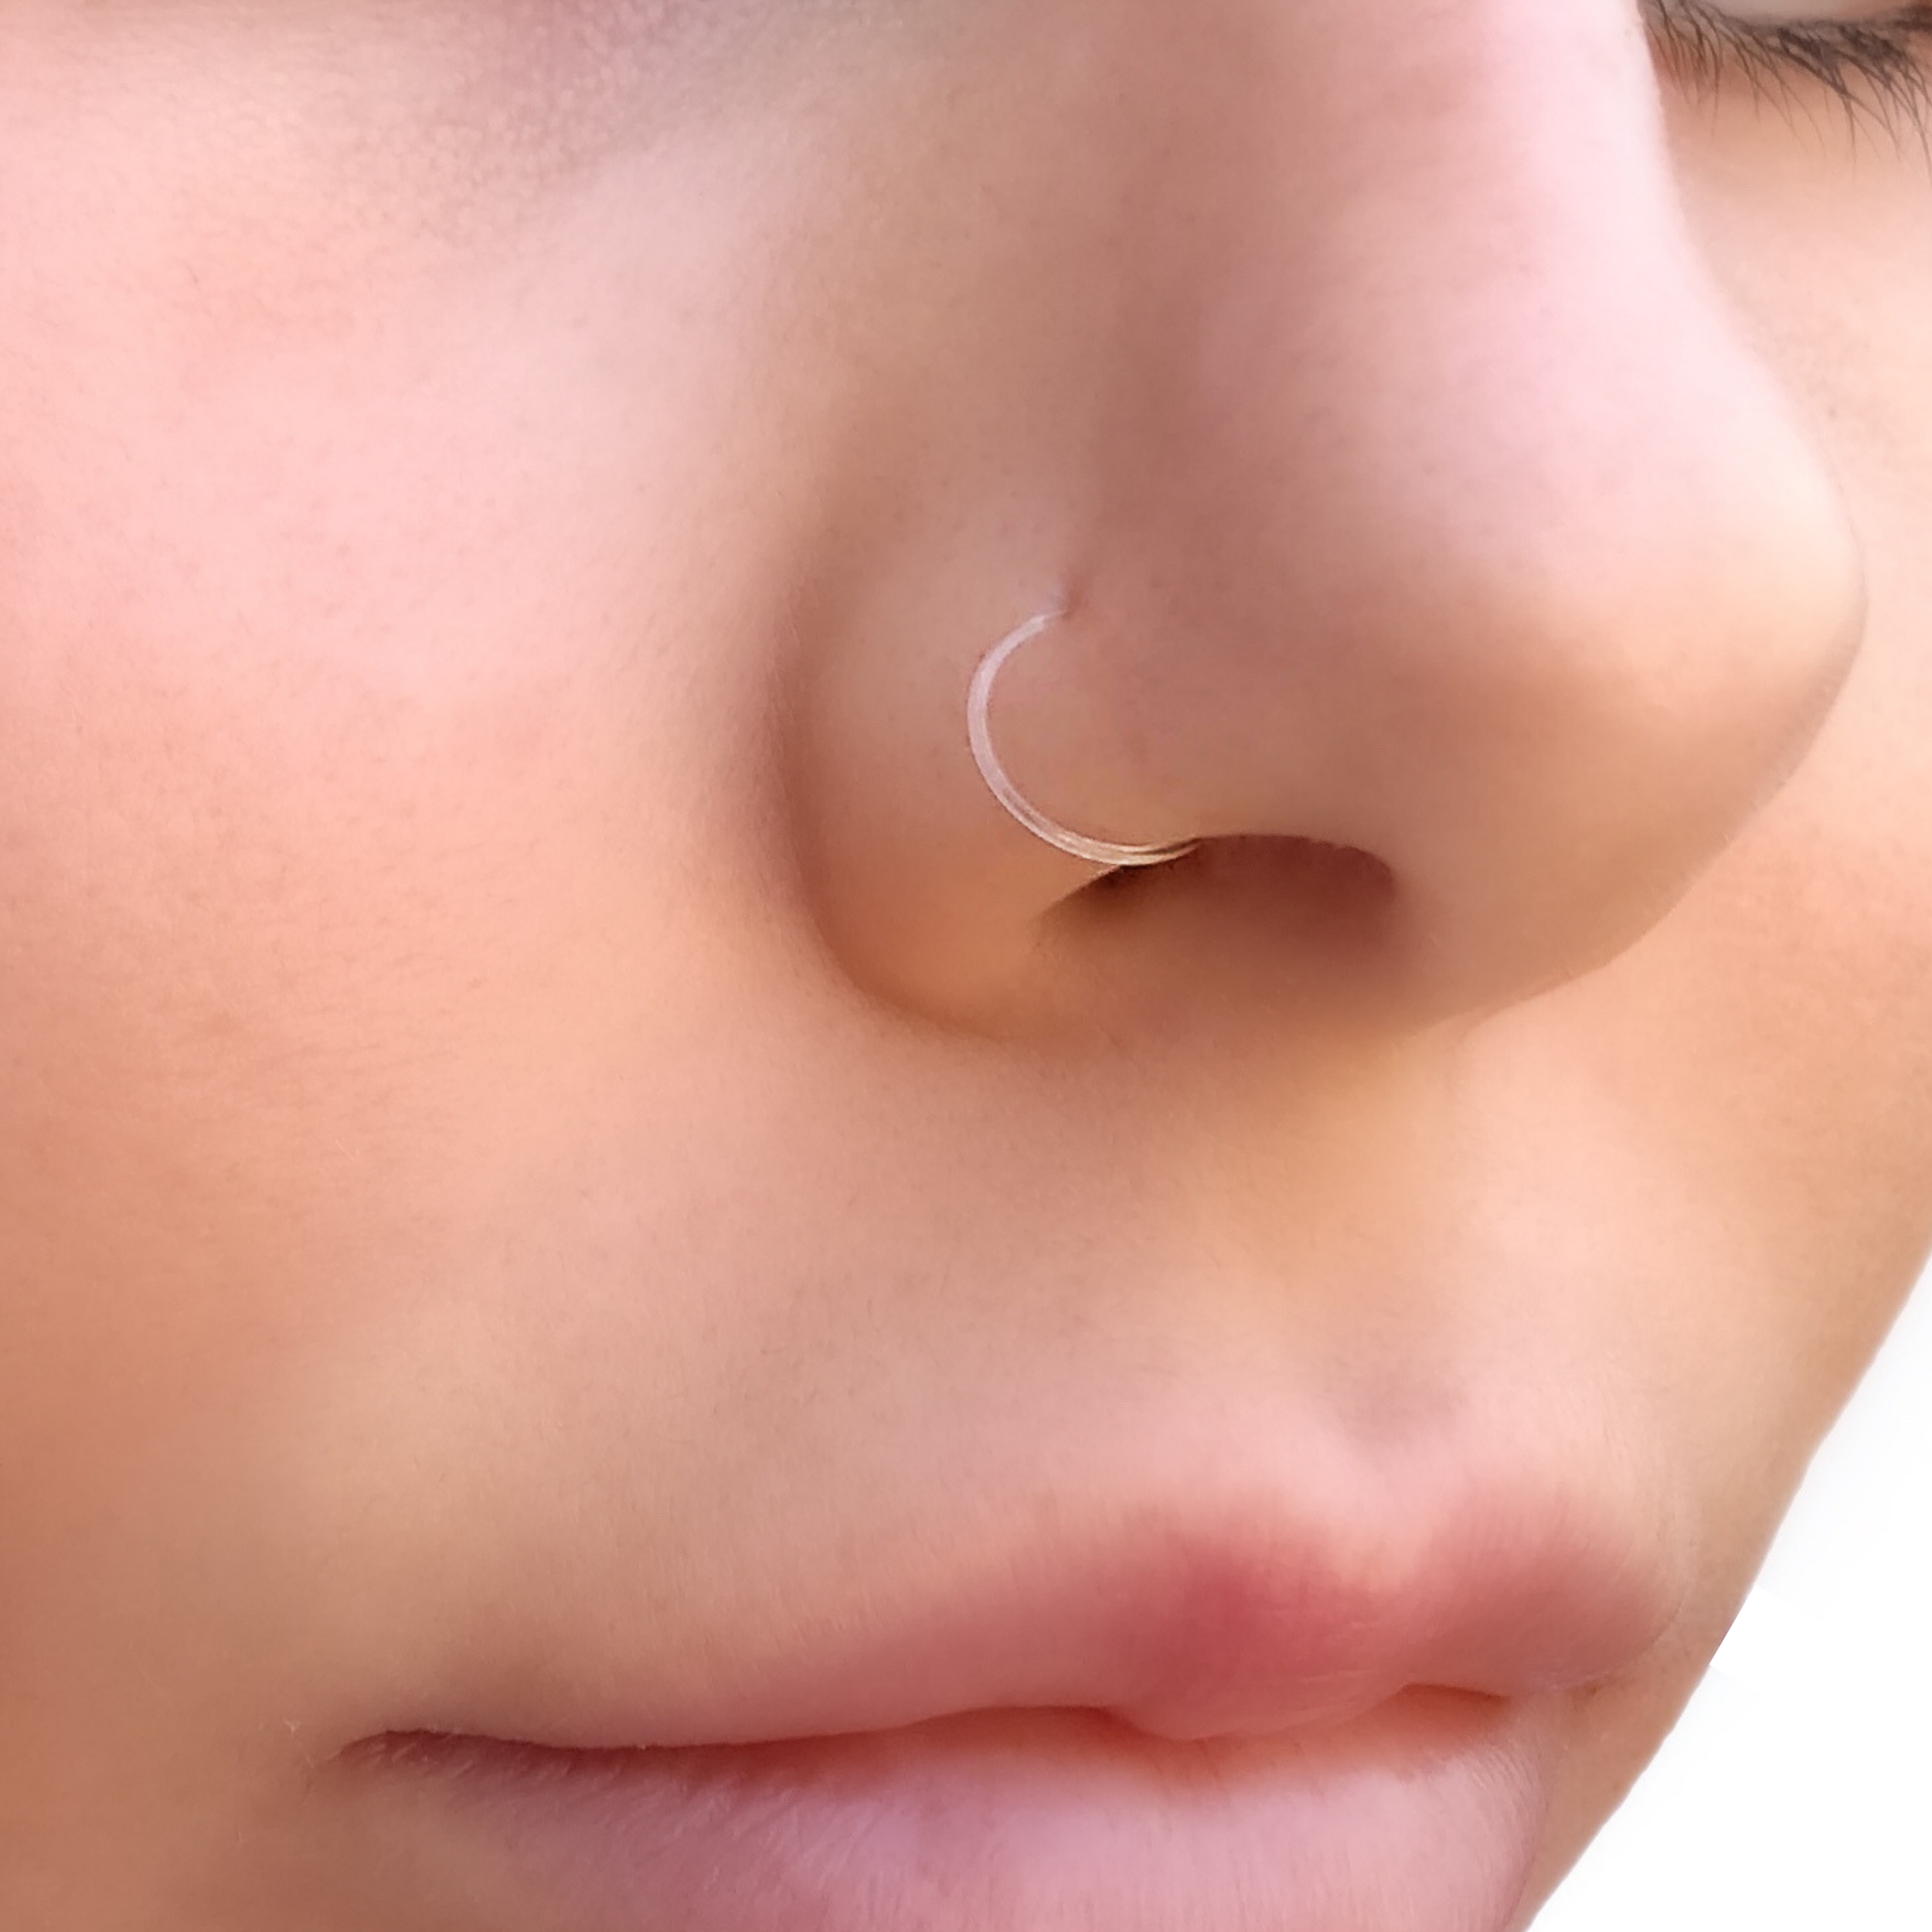 Clear Nose Ring Retainer Septum Ring Bioflex Clear Nose Stud